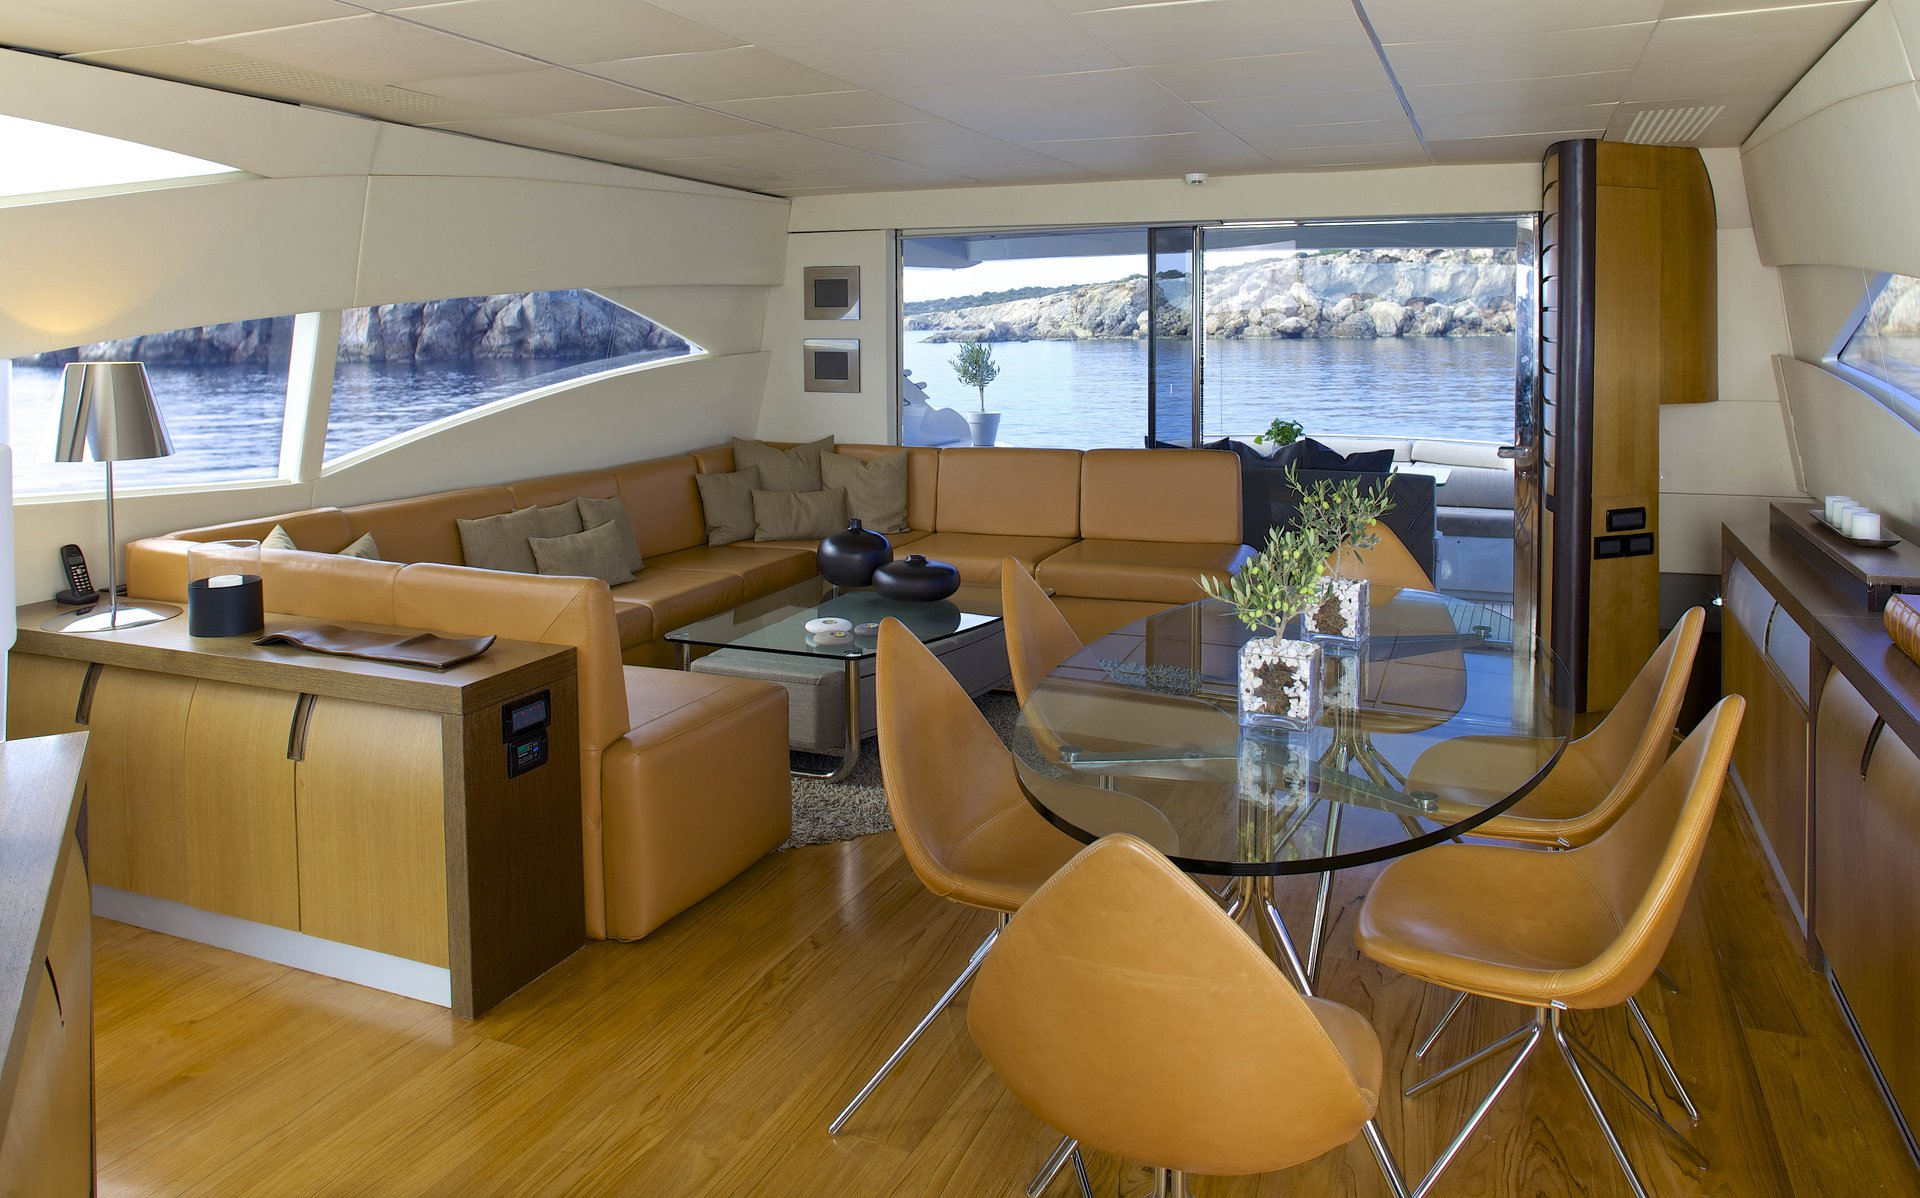 M/Y SOLARIS yacht for charter indoor lounge